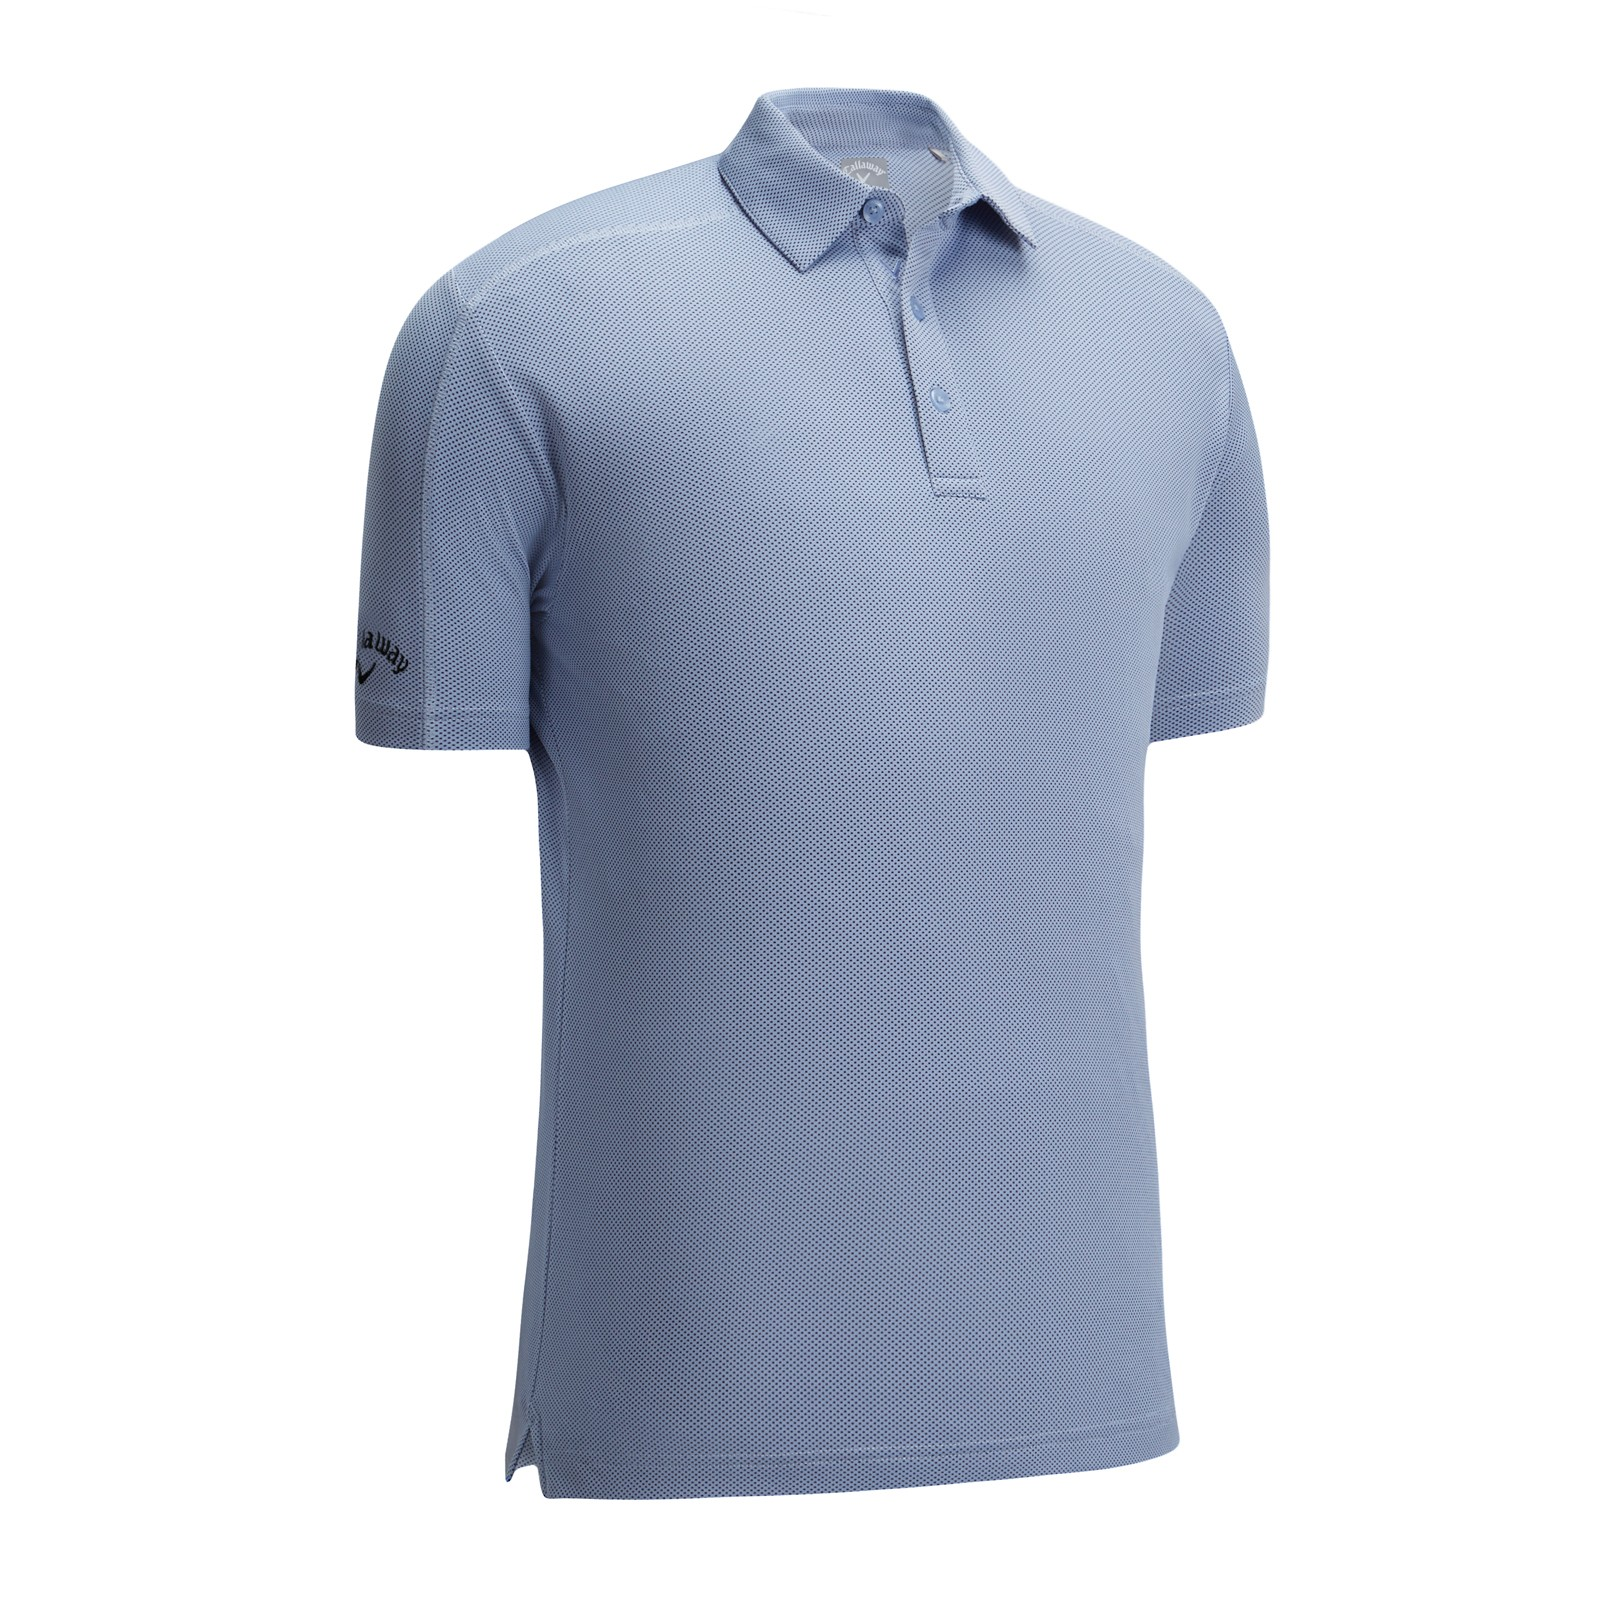 Callaway New Box Jacquard Polo